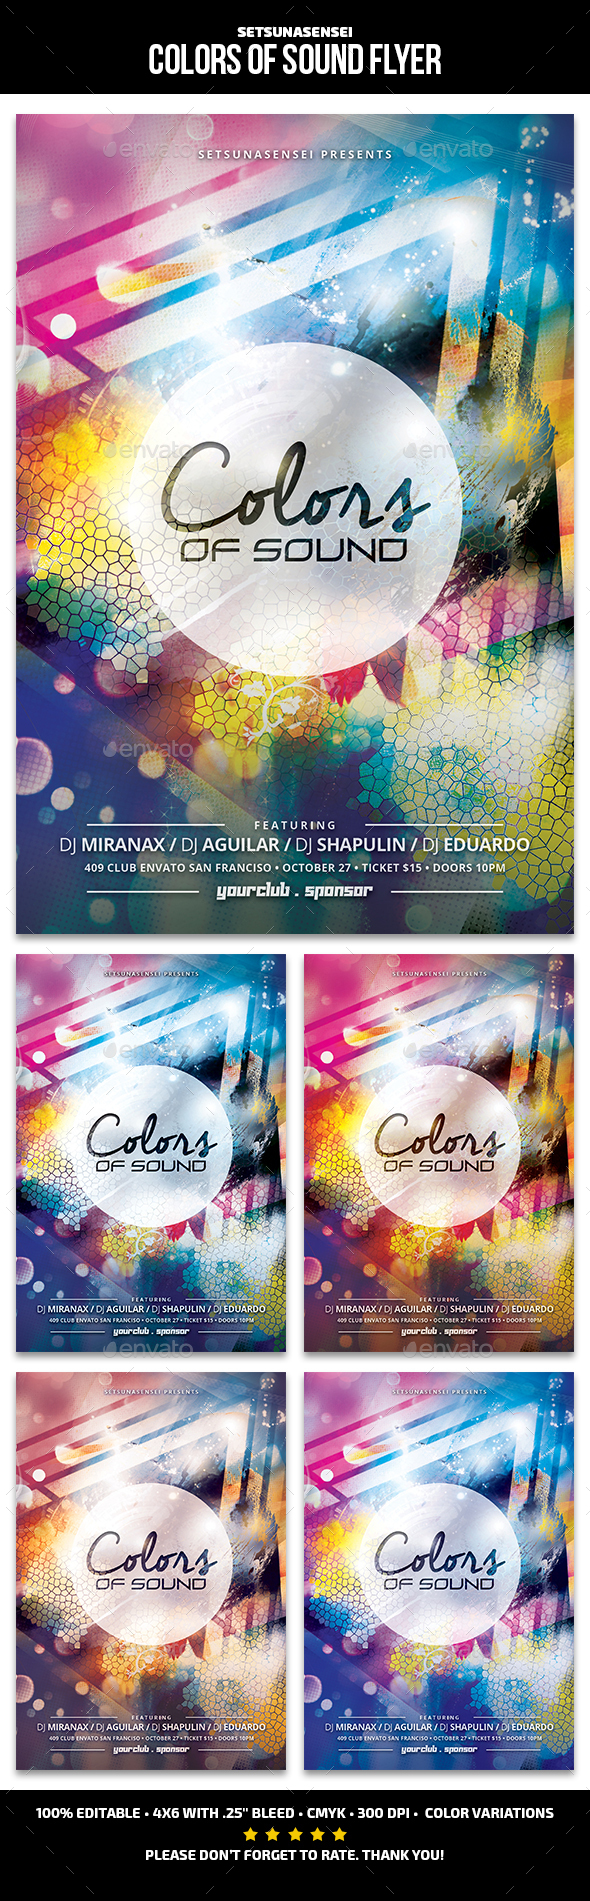 Colors of Sound Flyer - Clubs & Parties Events